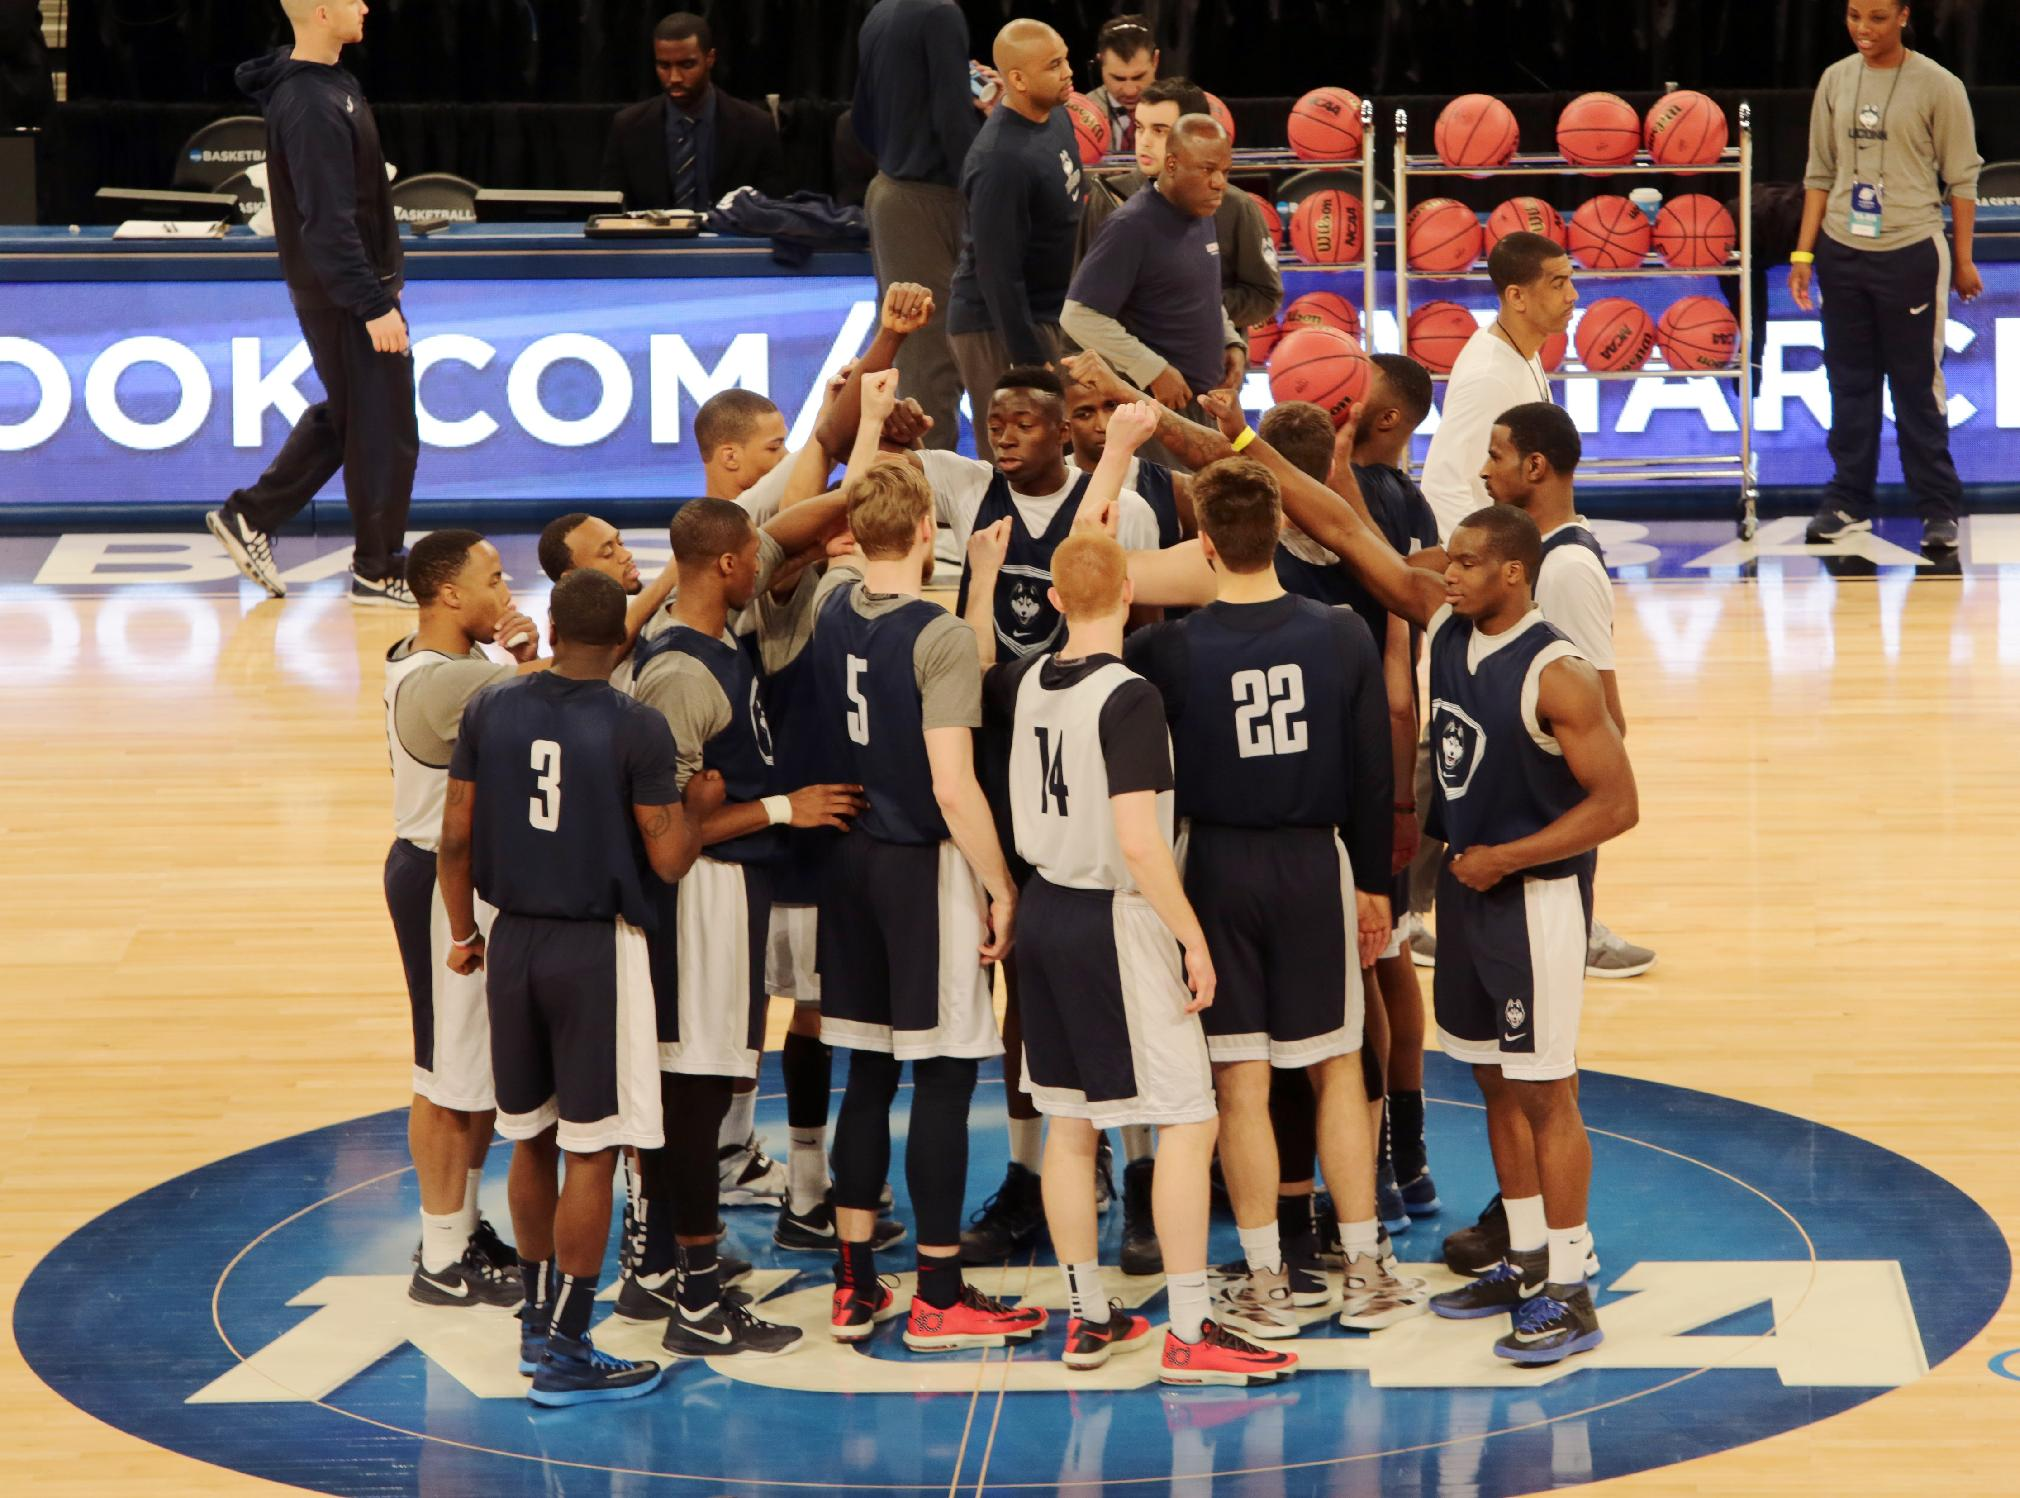 Connecticut players gather on the court at Madison Square Garden during practice at the NCAA college basketball tournament in New York, Thursday, March 27, 2014. Connecticut plays Iowa State in a regional semifinal on Friday